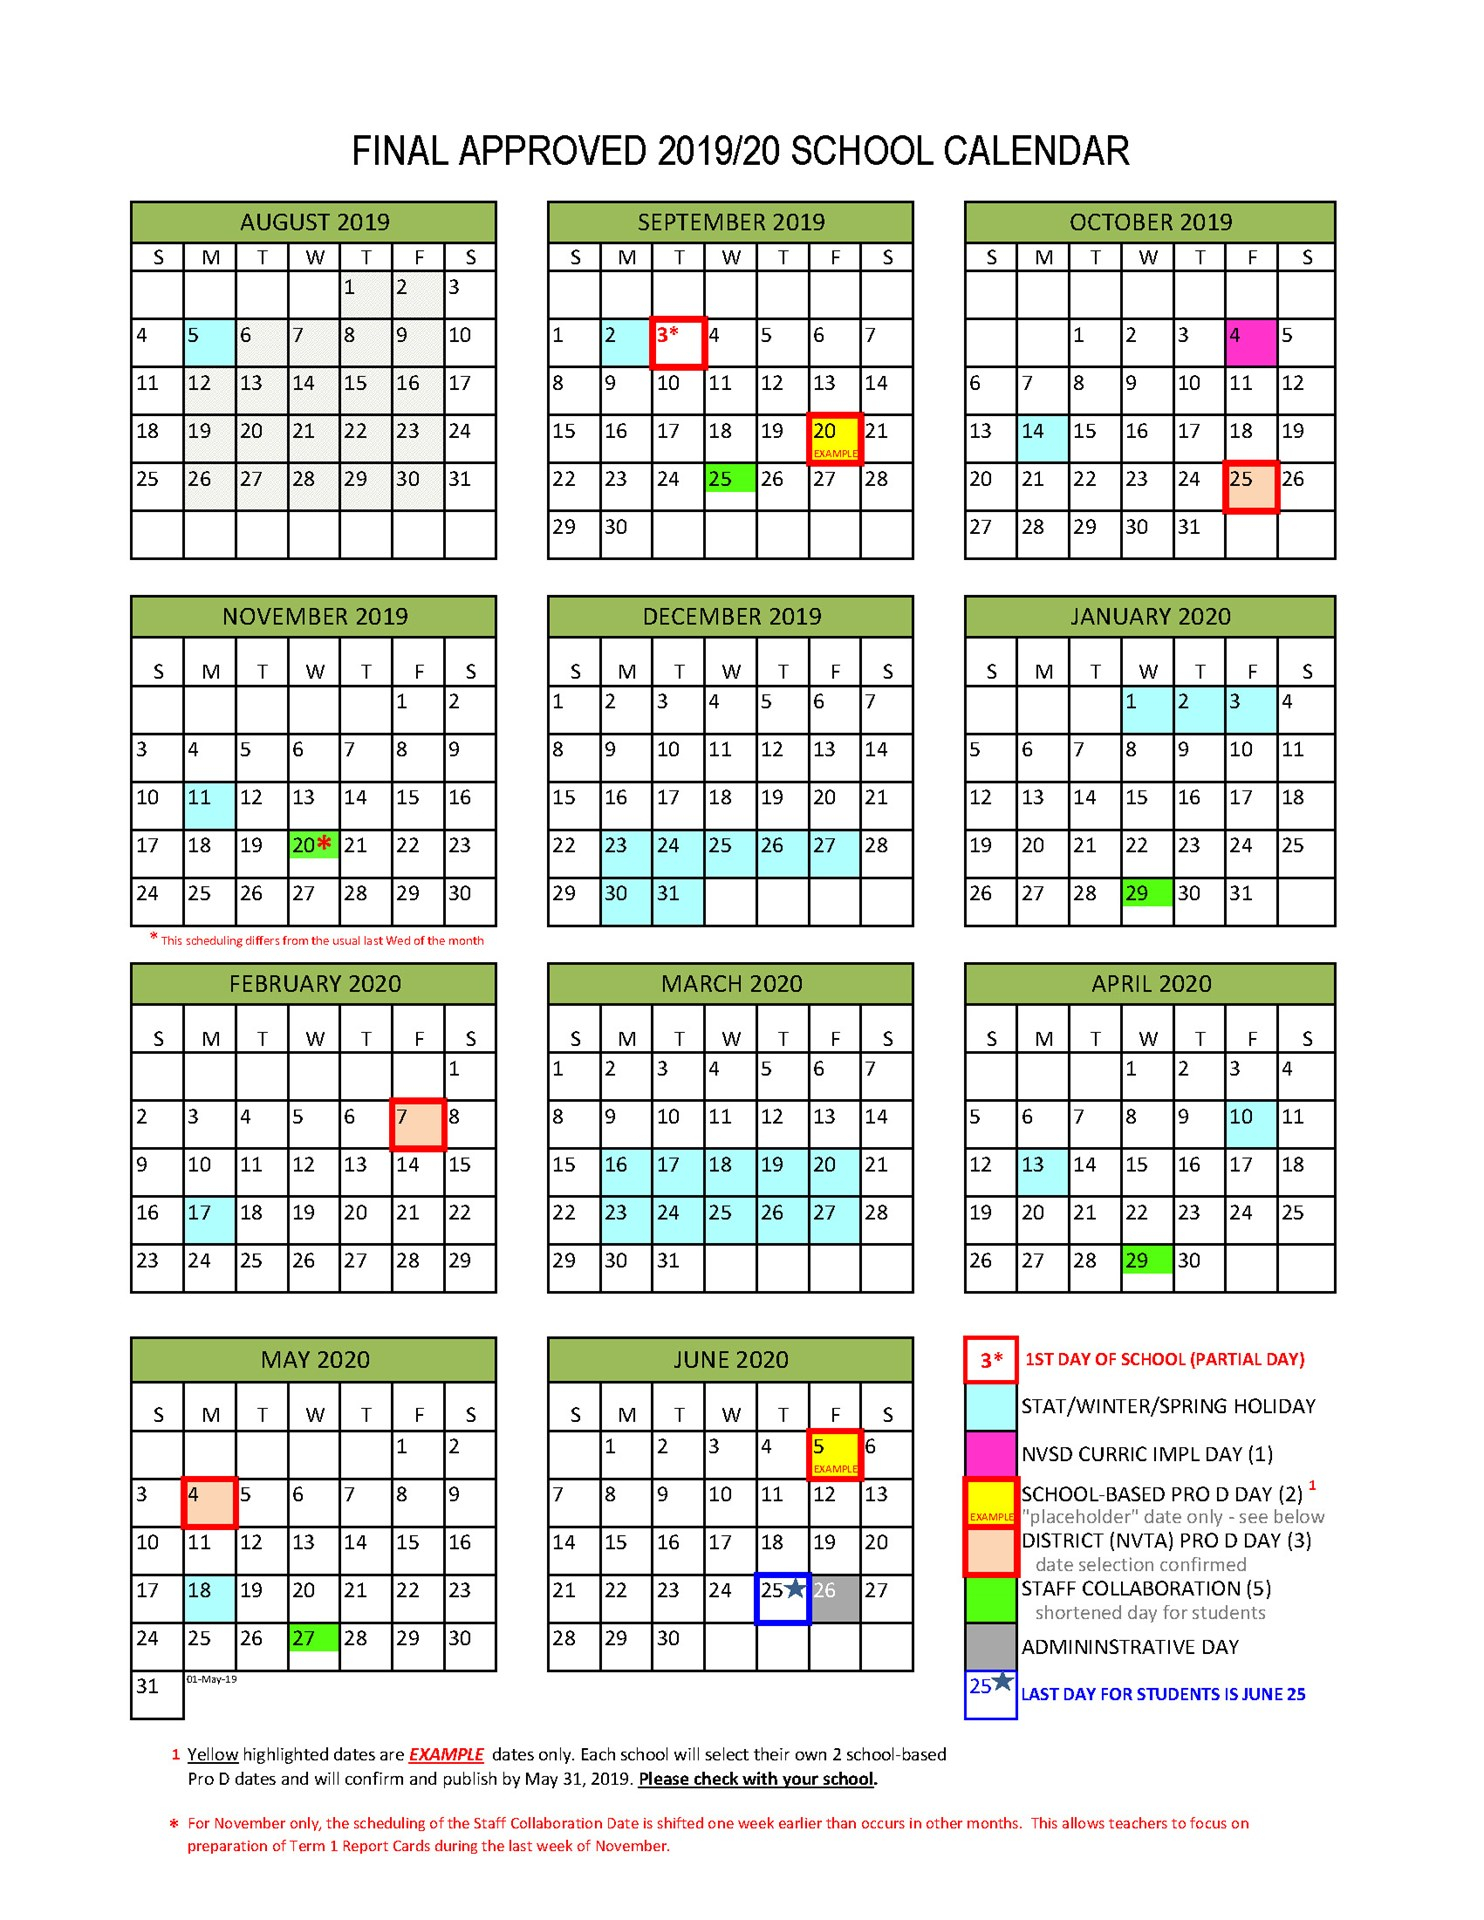 School Calendar | Coursework Sample March 2020 In Norco Unified School District Calendar